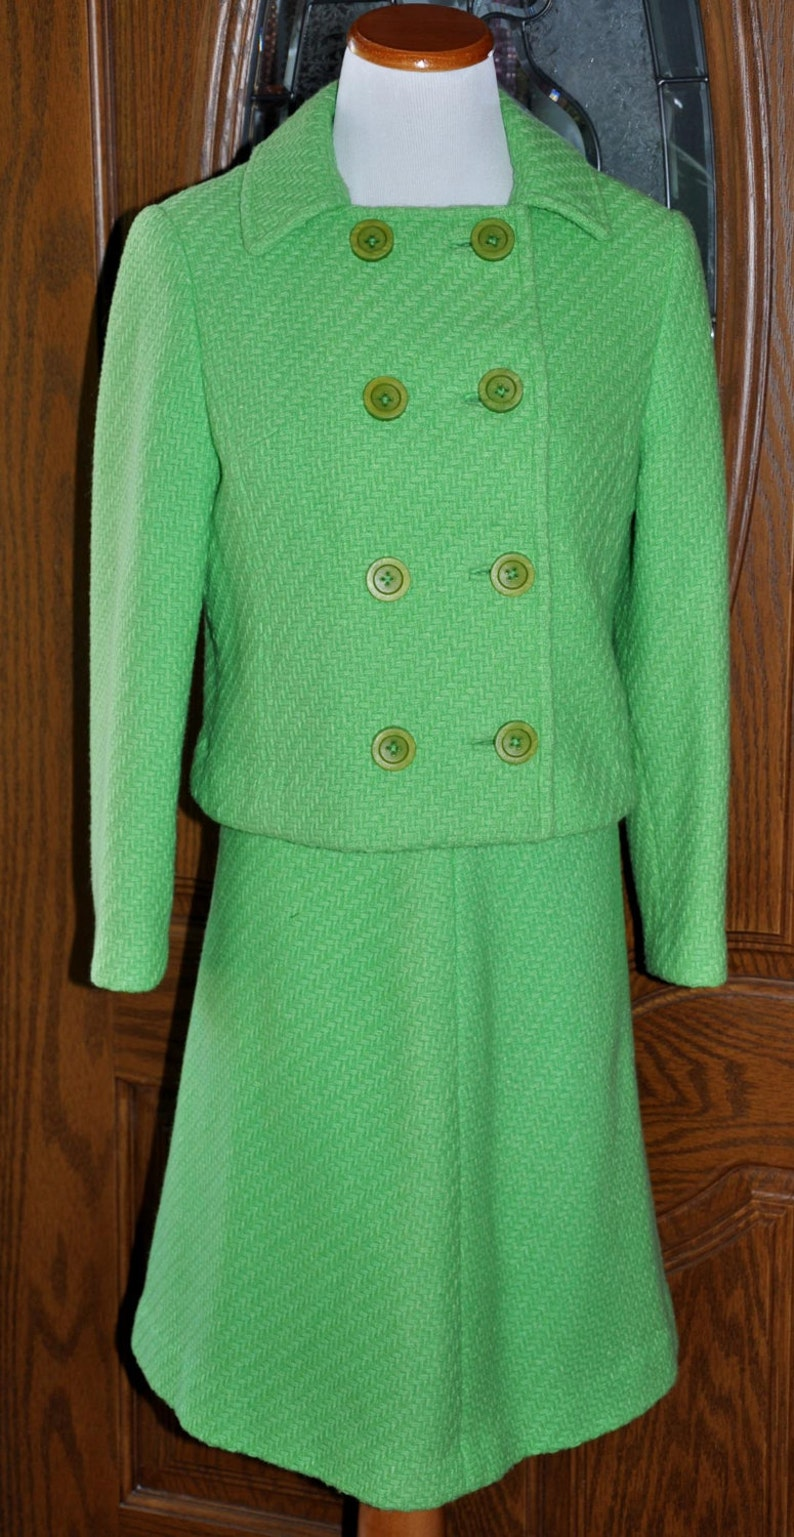 Vintage 1960's Jackie Kennedy Style Custom Made Double Breasted Suit Size  2/4, Custom Made Suit, Jackie O Style Suit, Green Wool Suit